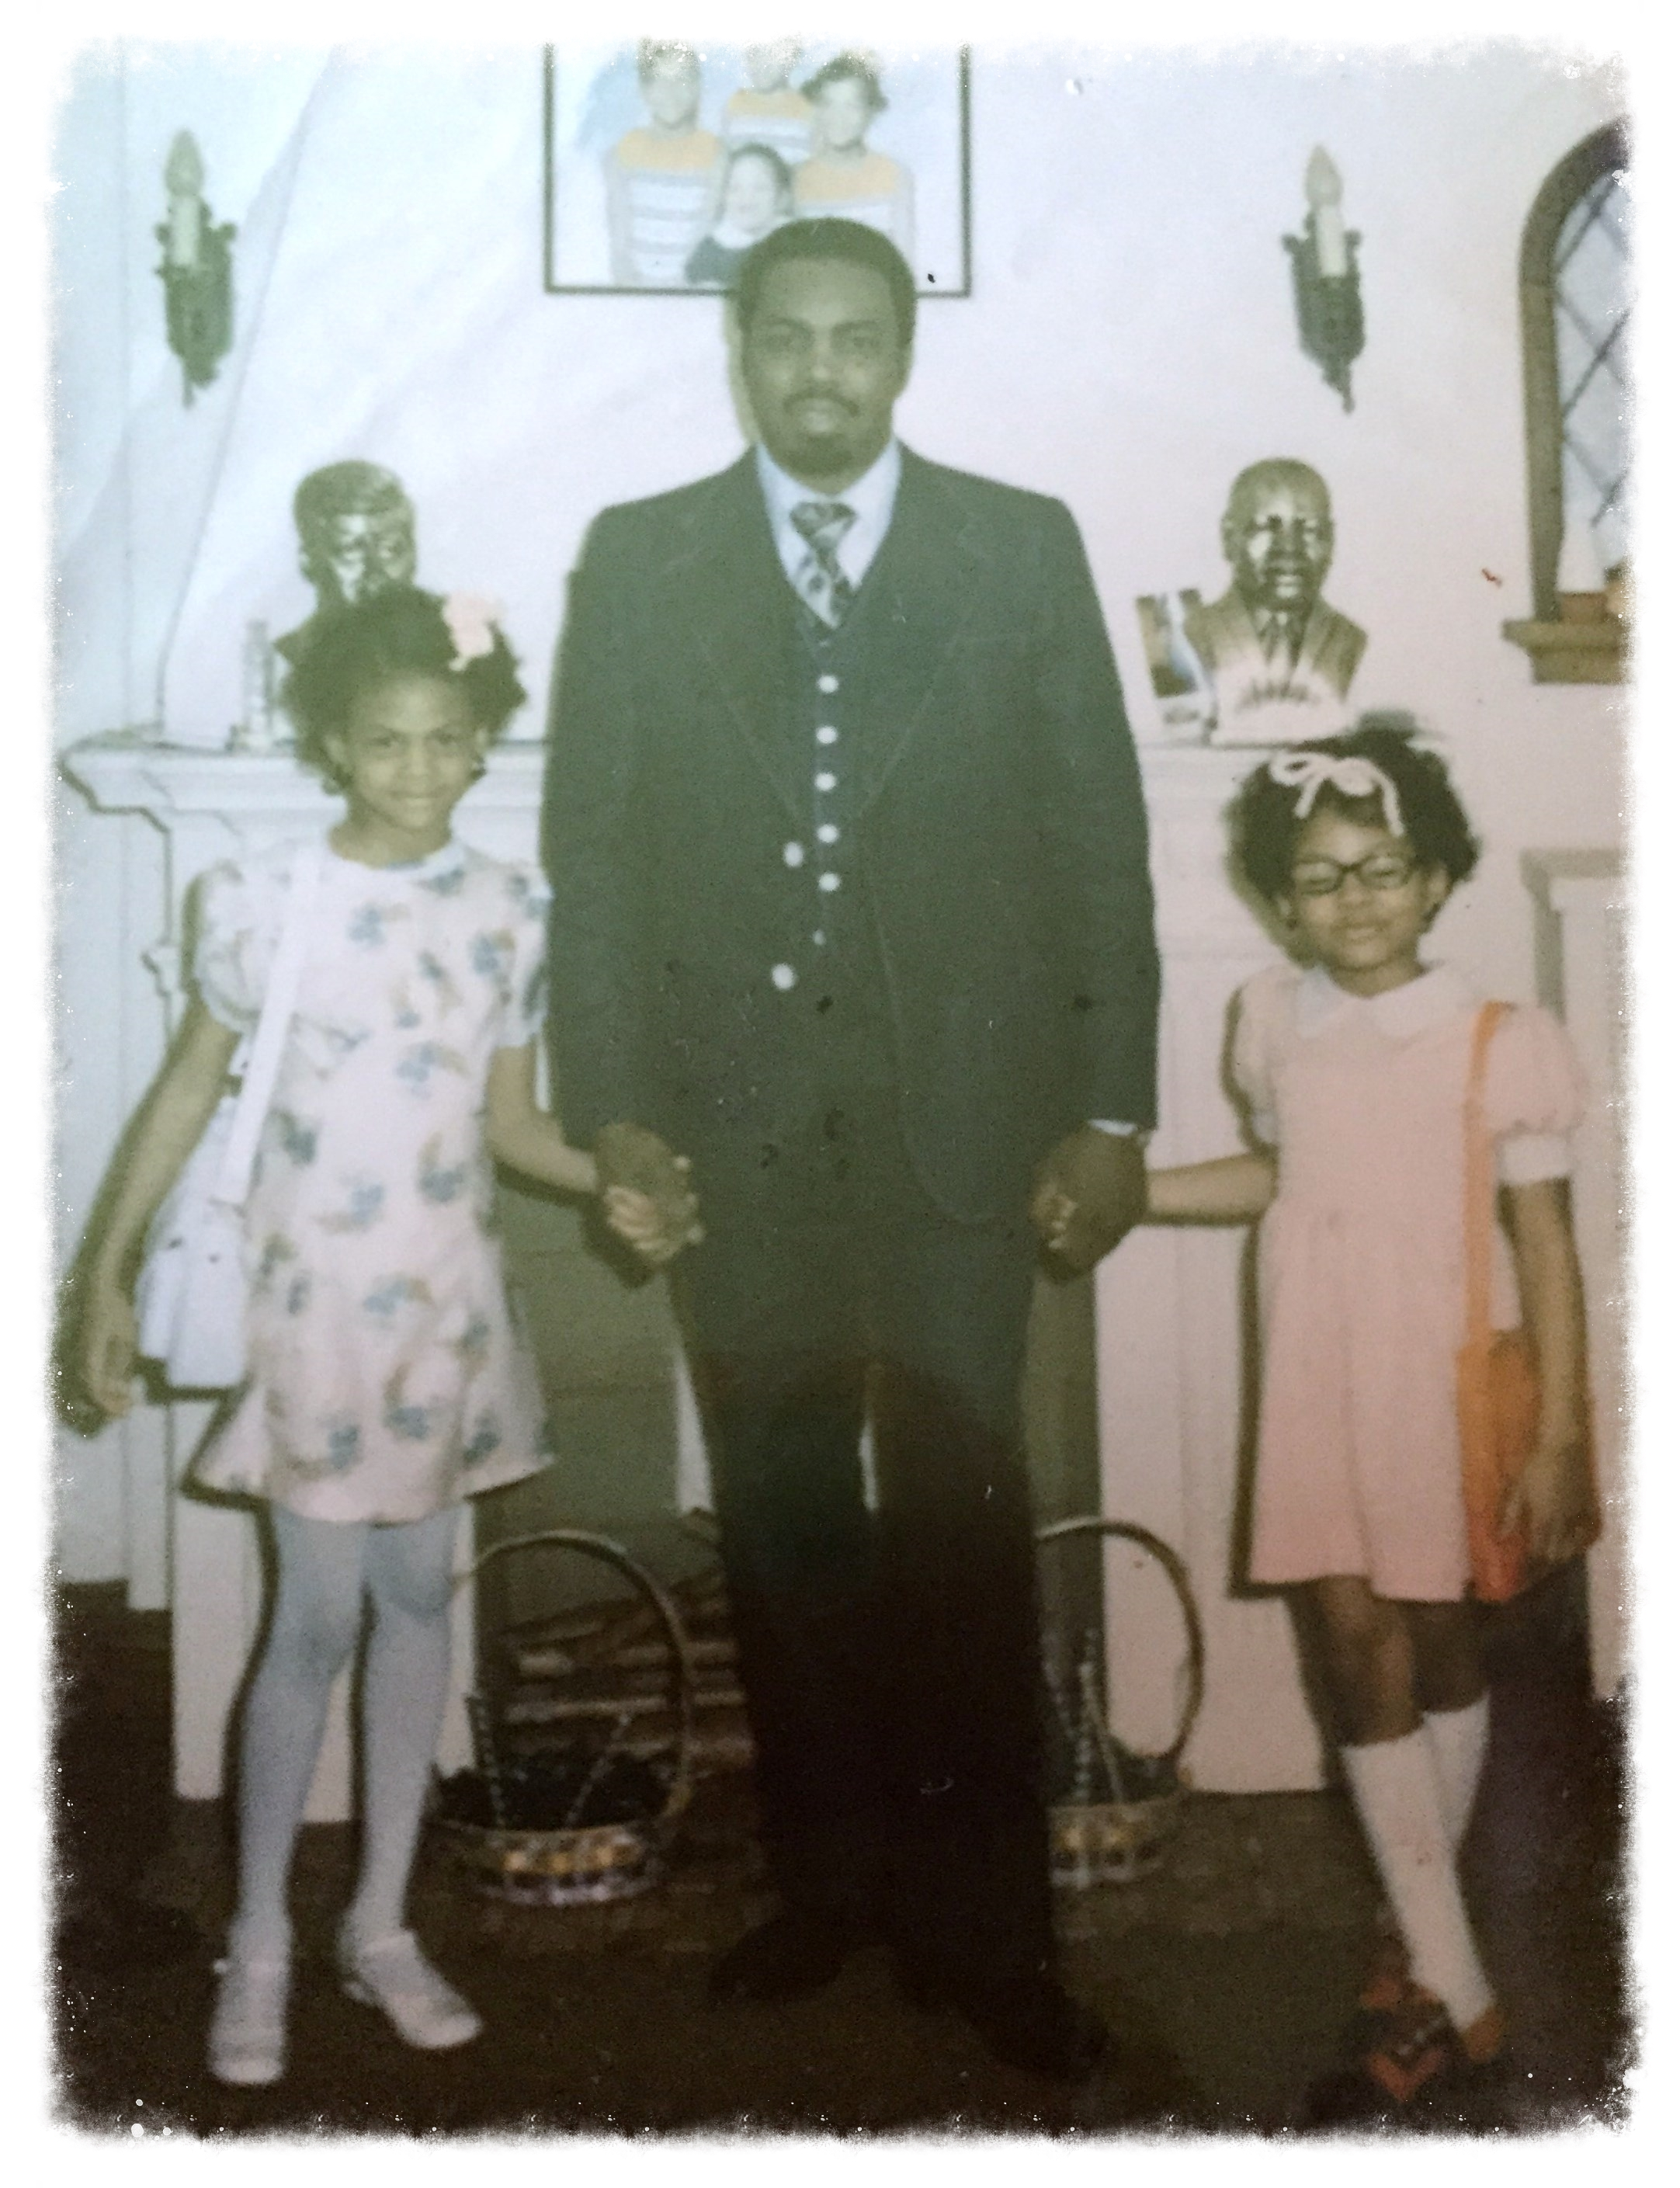 Sheila, (far right) with her dad and sister around the time of her parents' divorce.